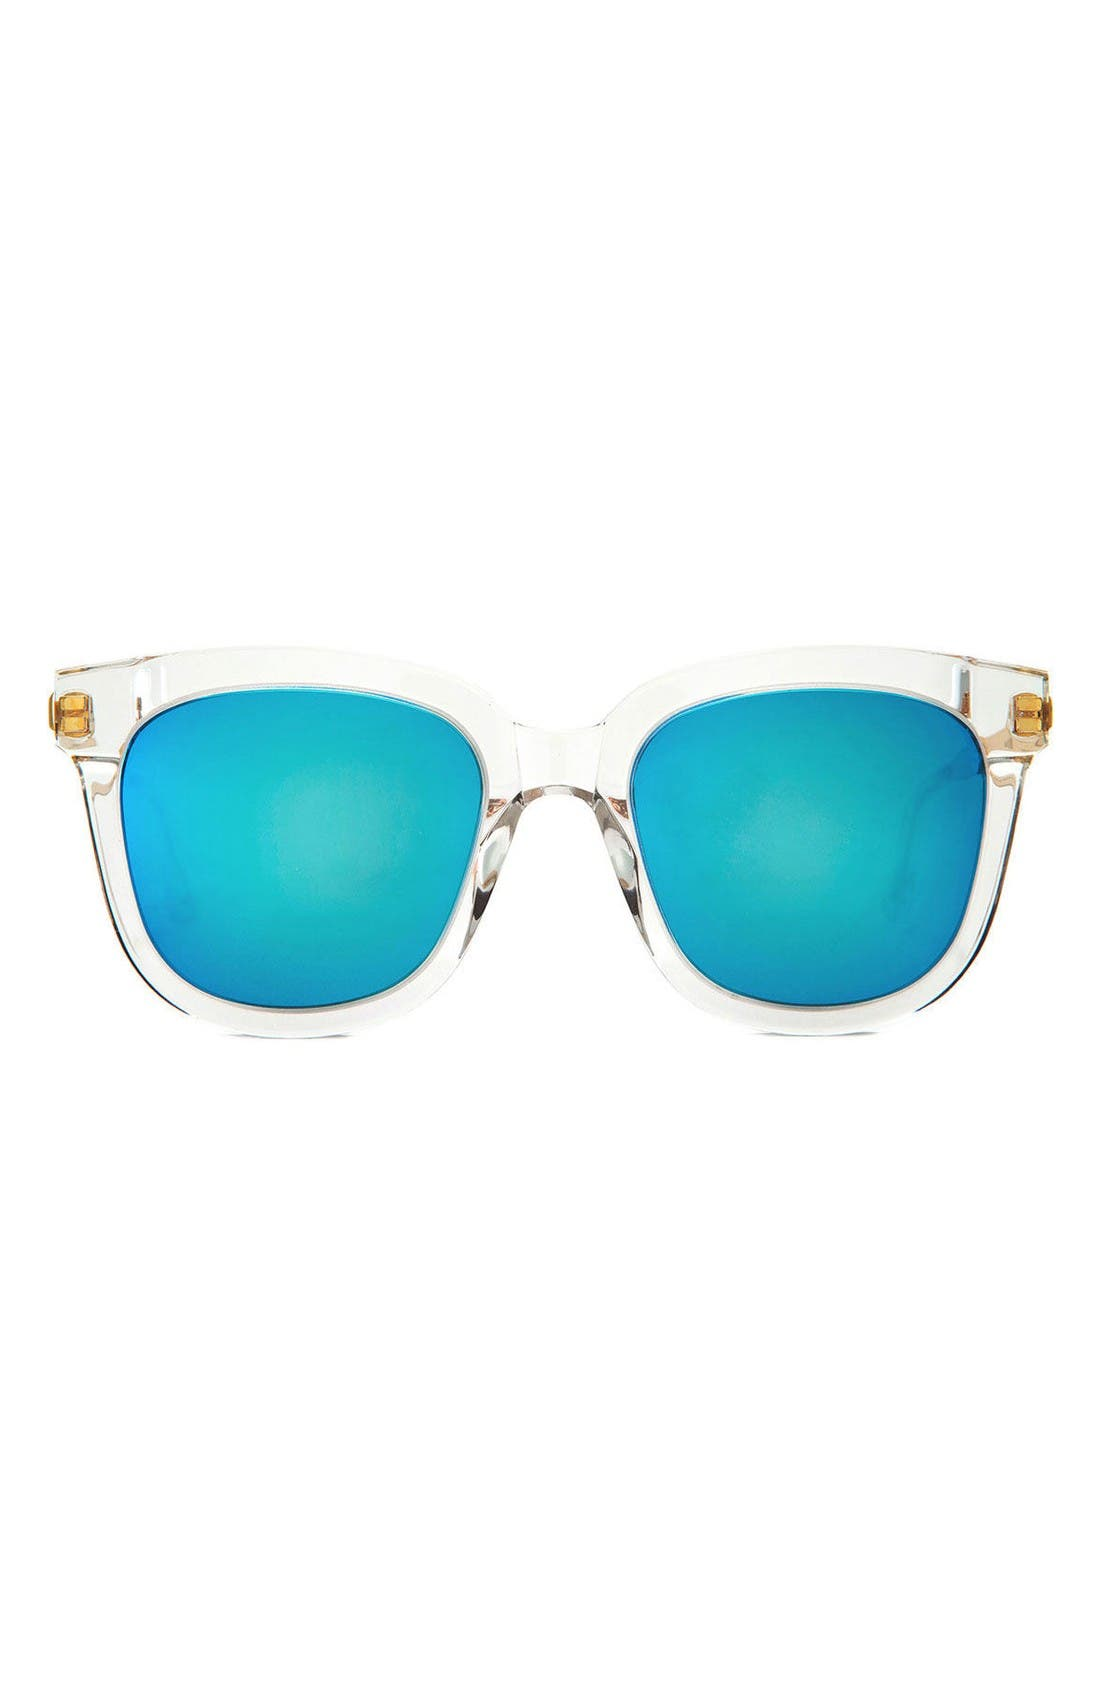 Main Image - Gentle Monster Absente 54mm Sunglasses